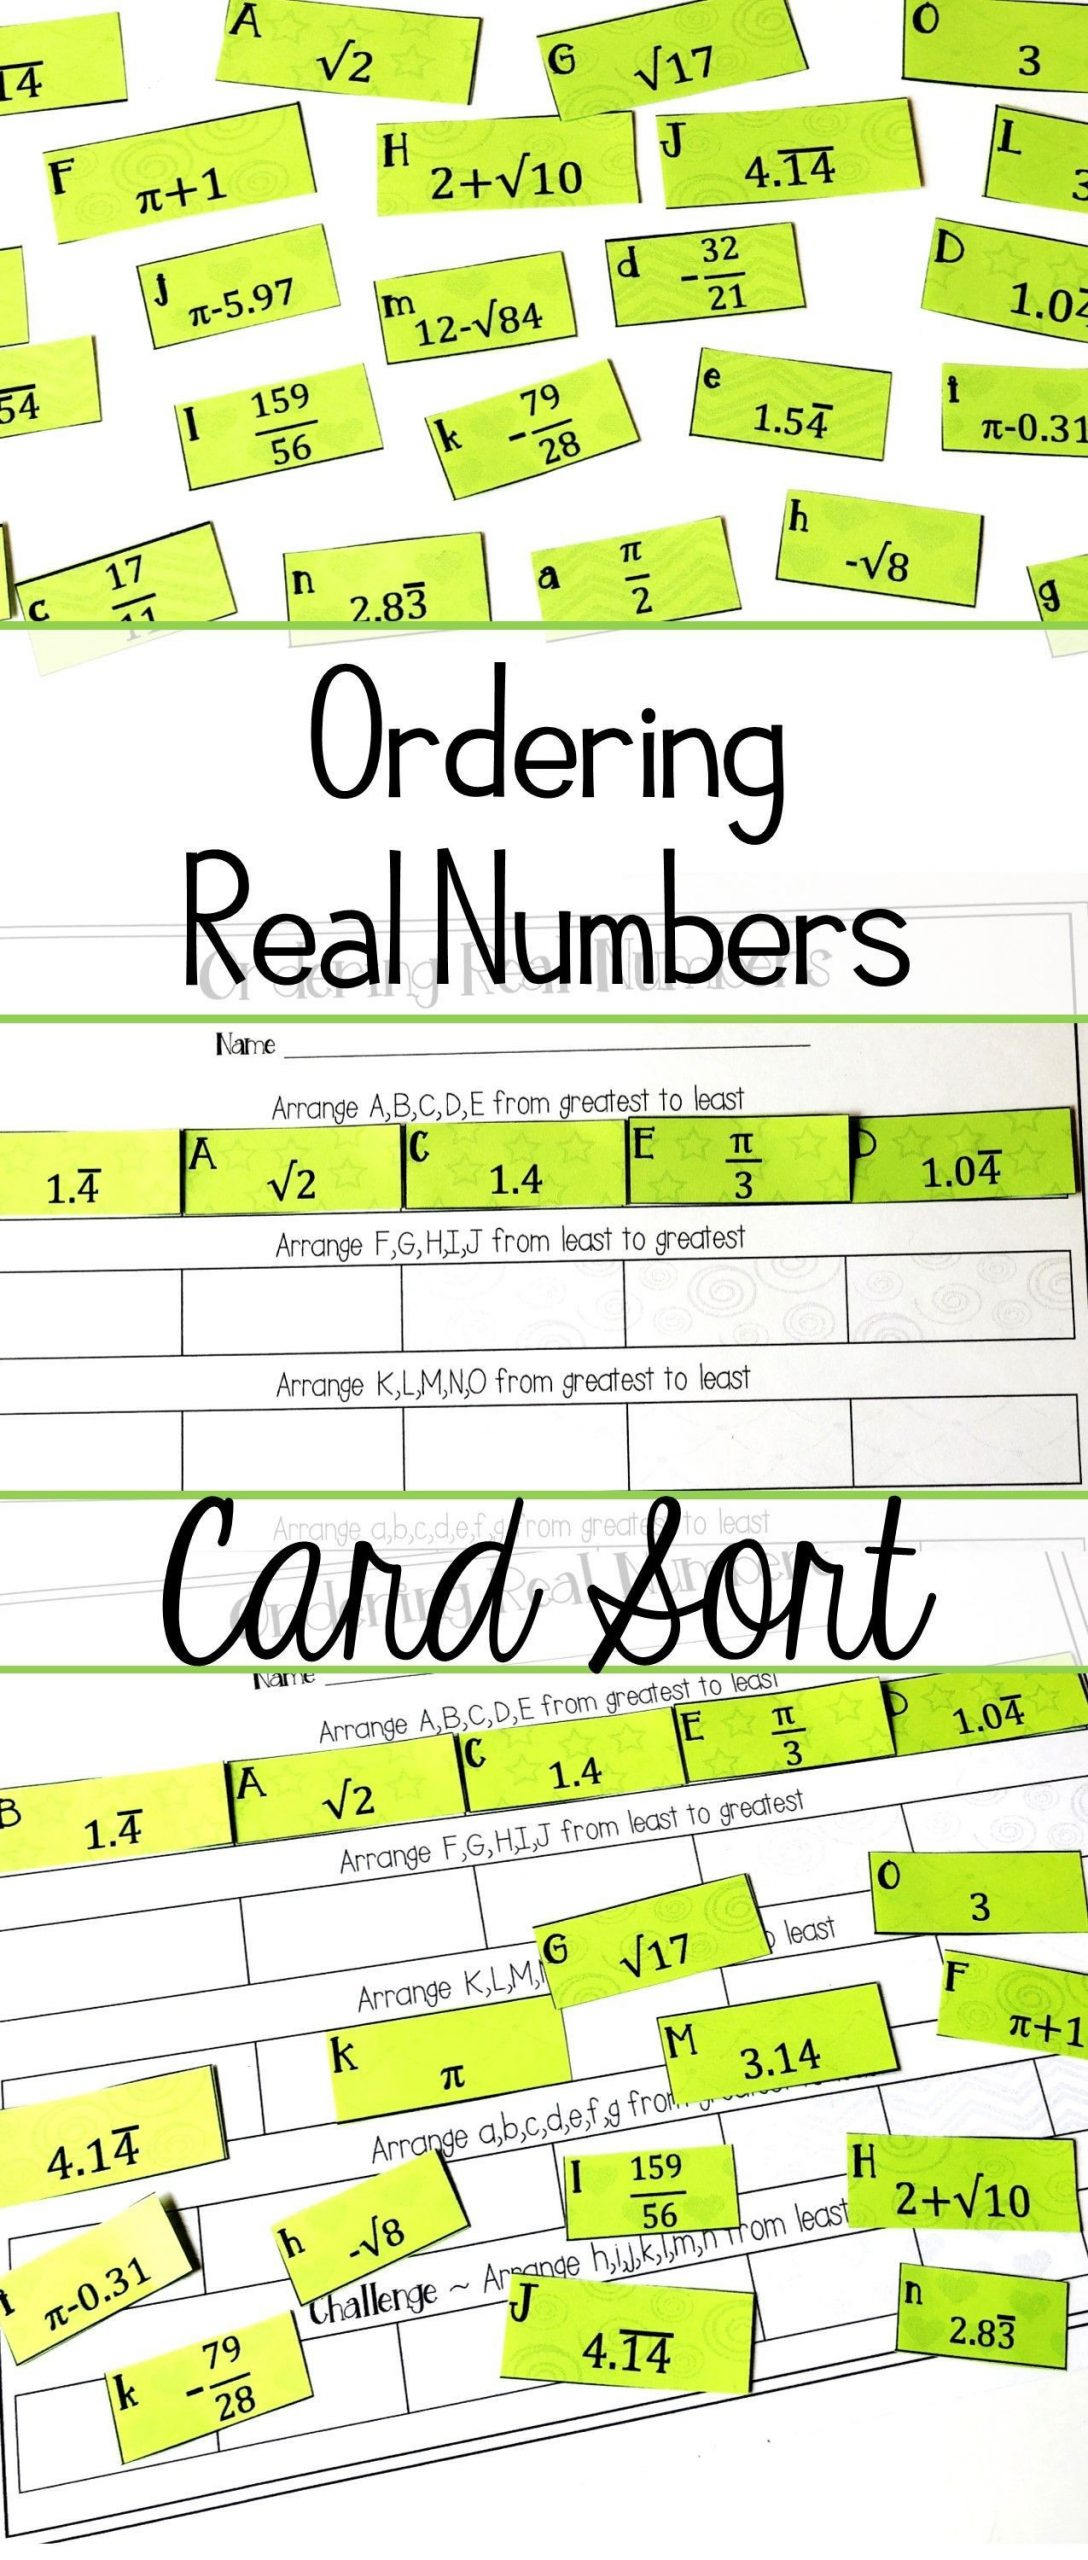 30 Real Number System Worksheet Answers